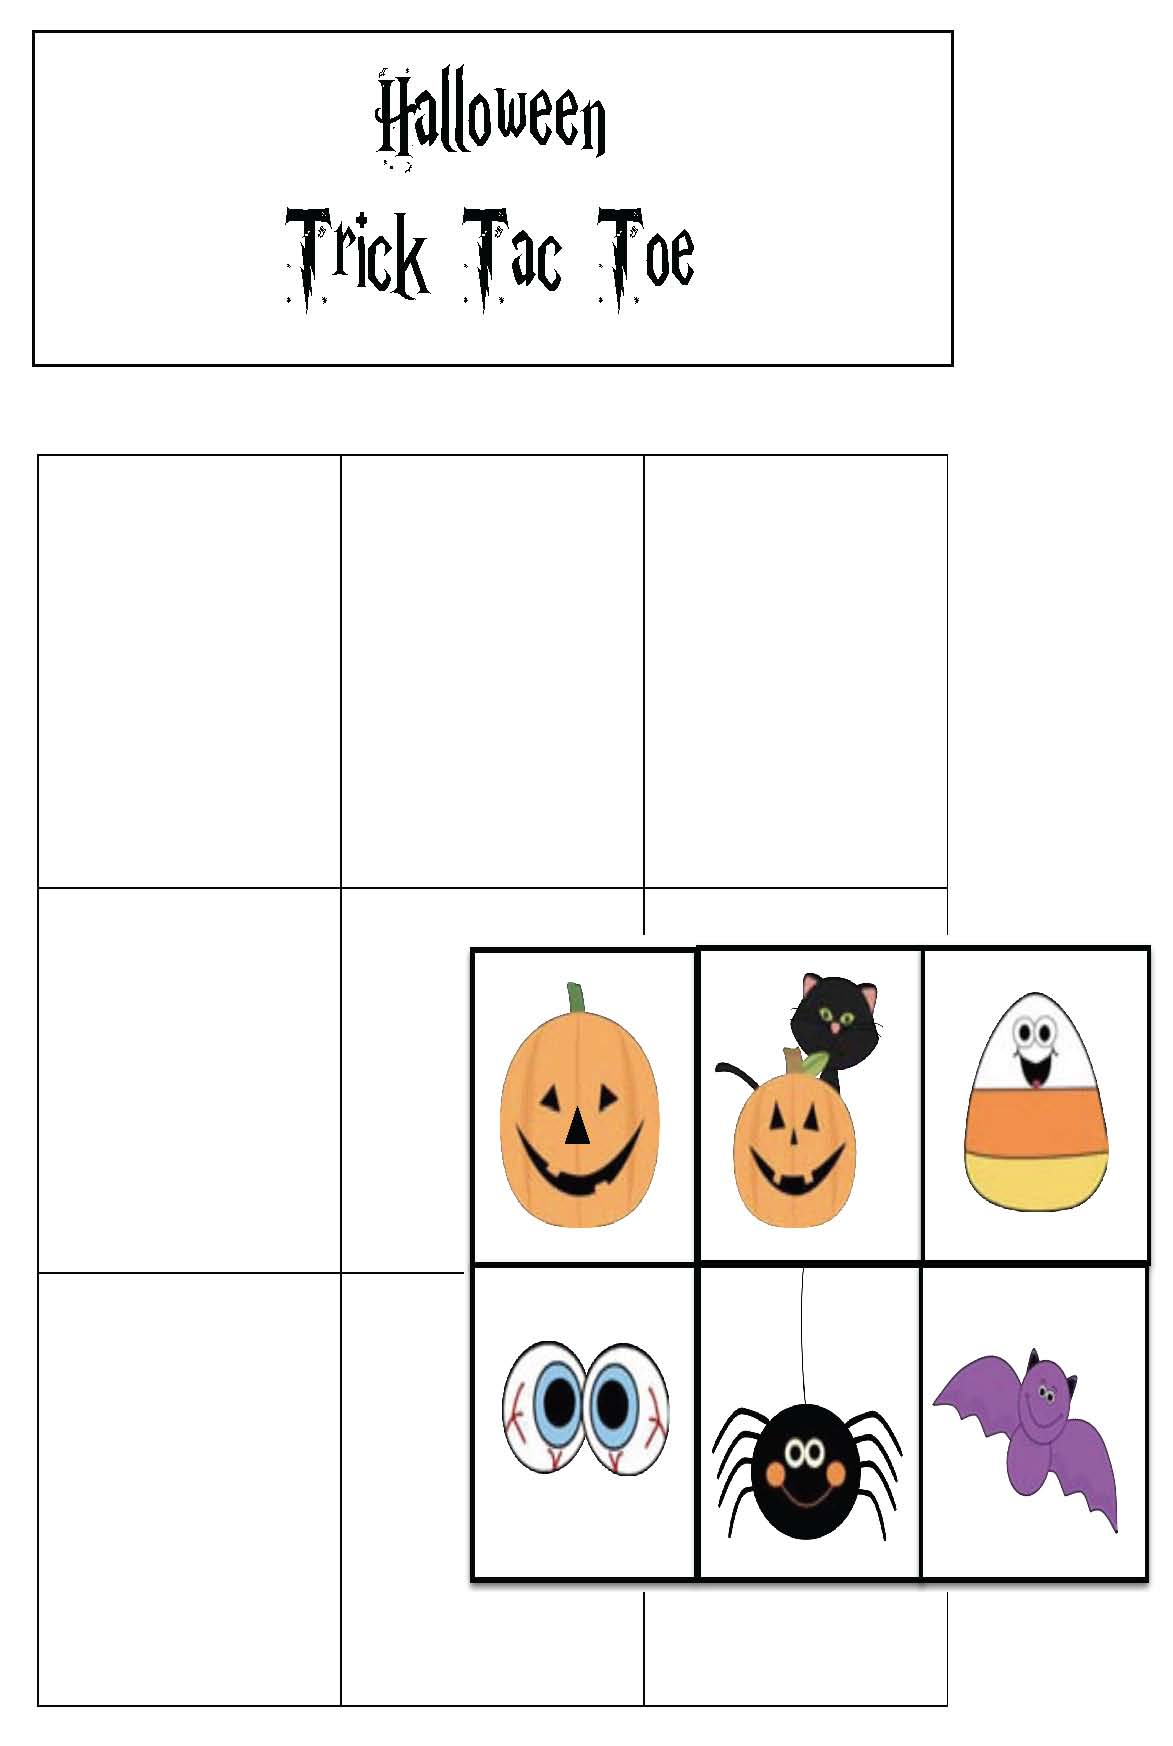 I mustache word scramble, HHalloween tic tac toe, Halloween games, halloween activities, halloween coloring pages, halloween puzzles, halloween word games, halloween dice games, 100 chart games, 100 chart activities, hidden pictures in a 100 grid, pumpkin activities, pumpkin games, end punctuation activities, capitalization activities, spelling games, spelling activities, halloween writing prompts,